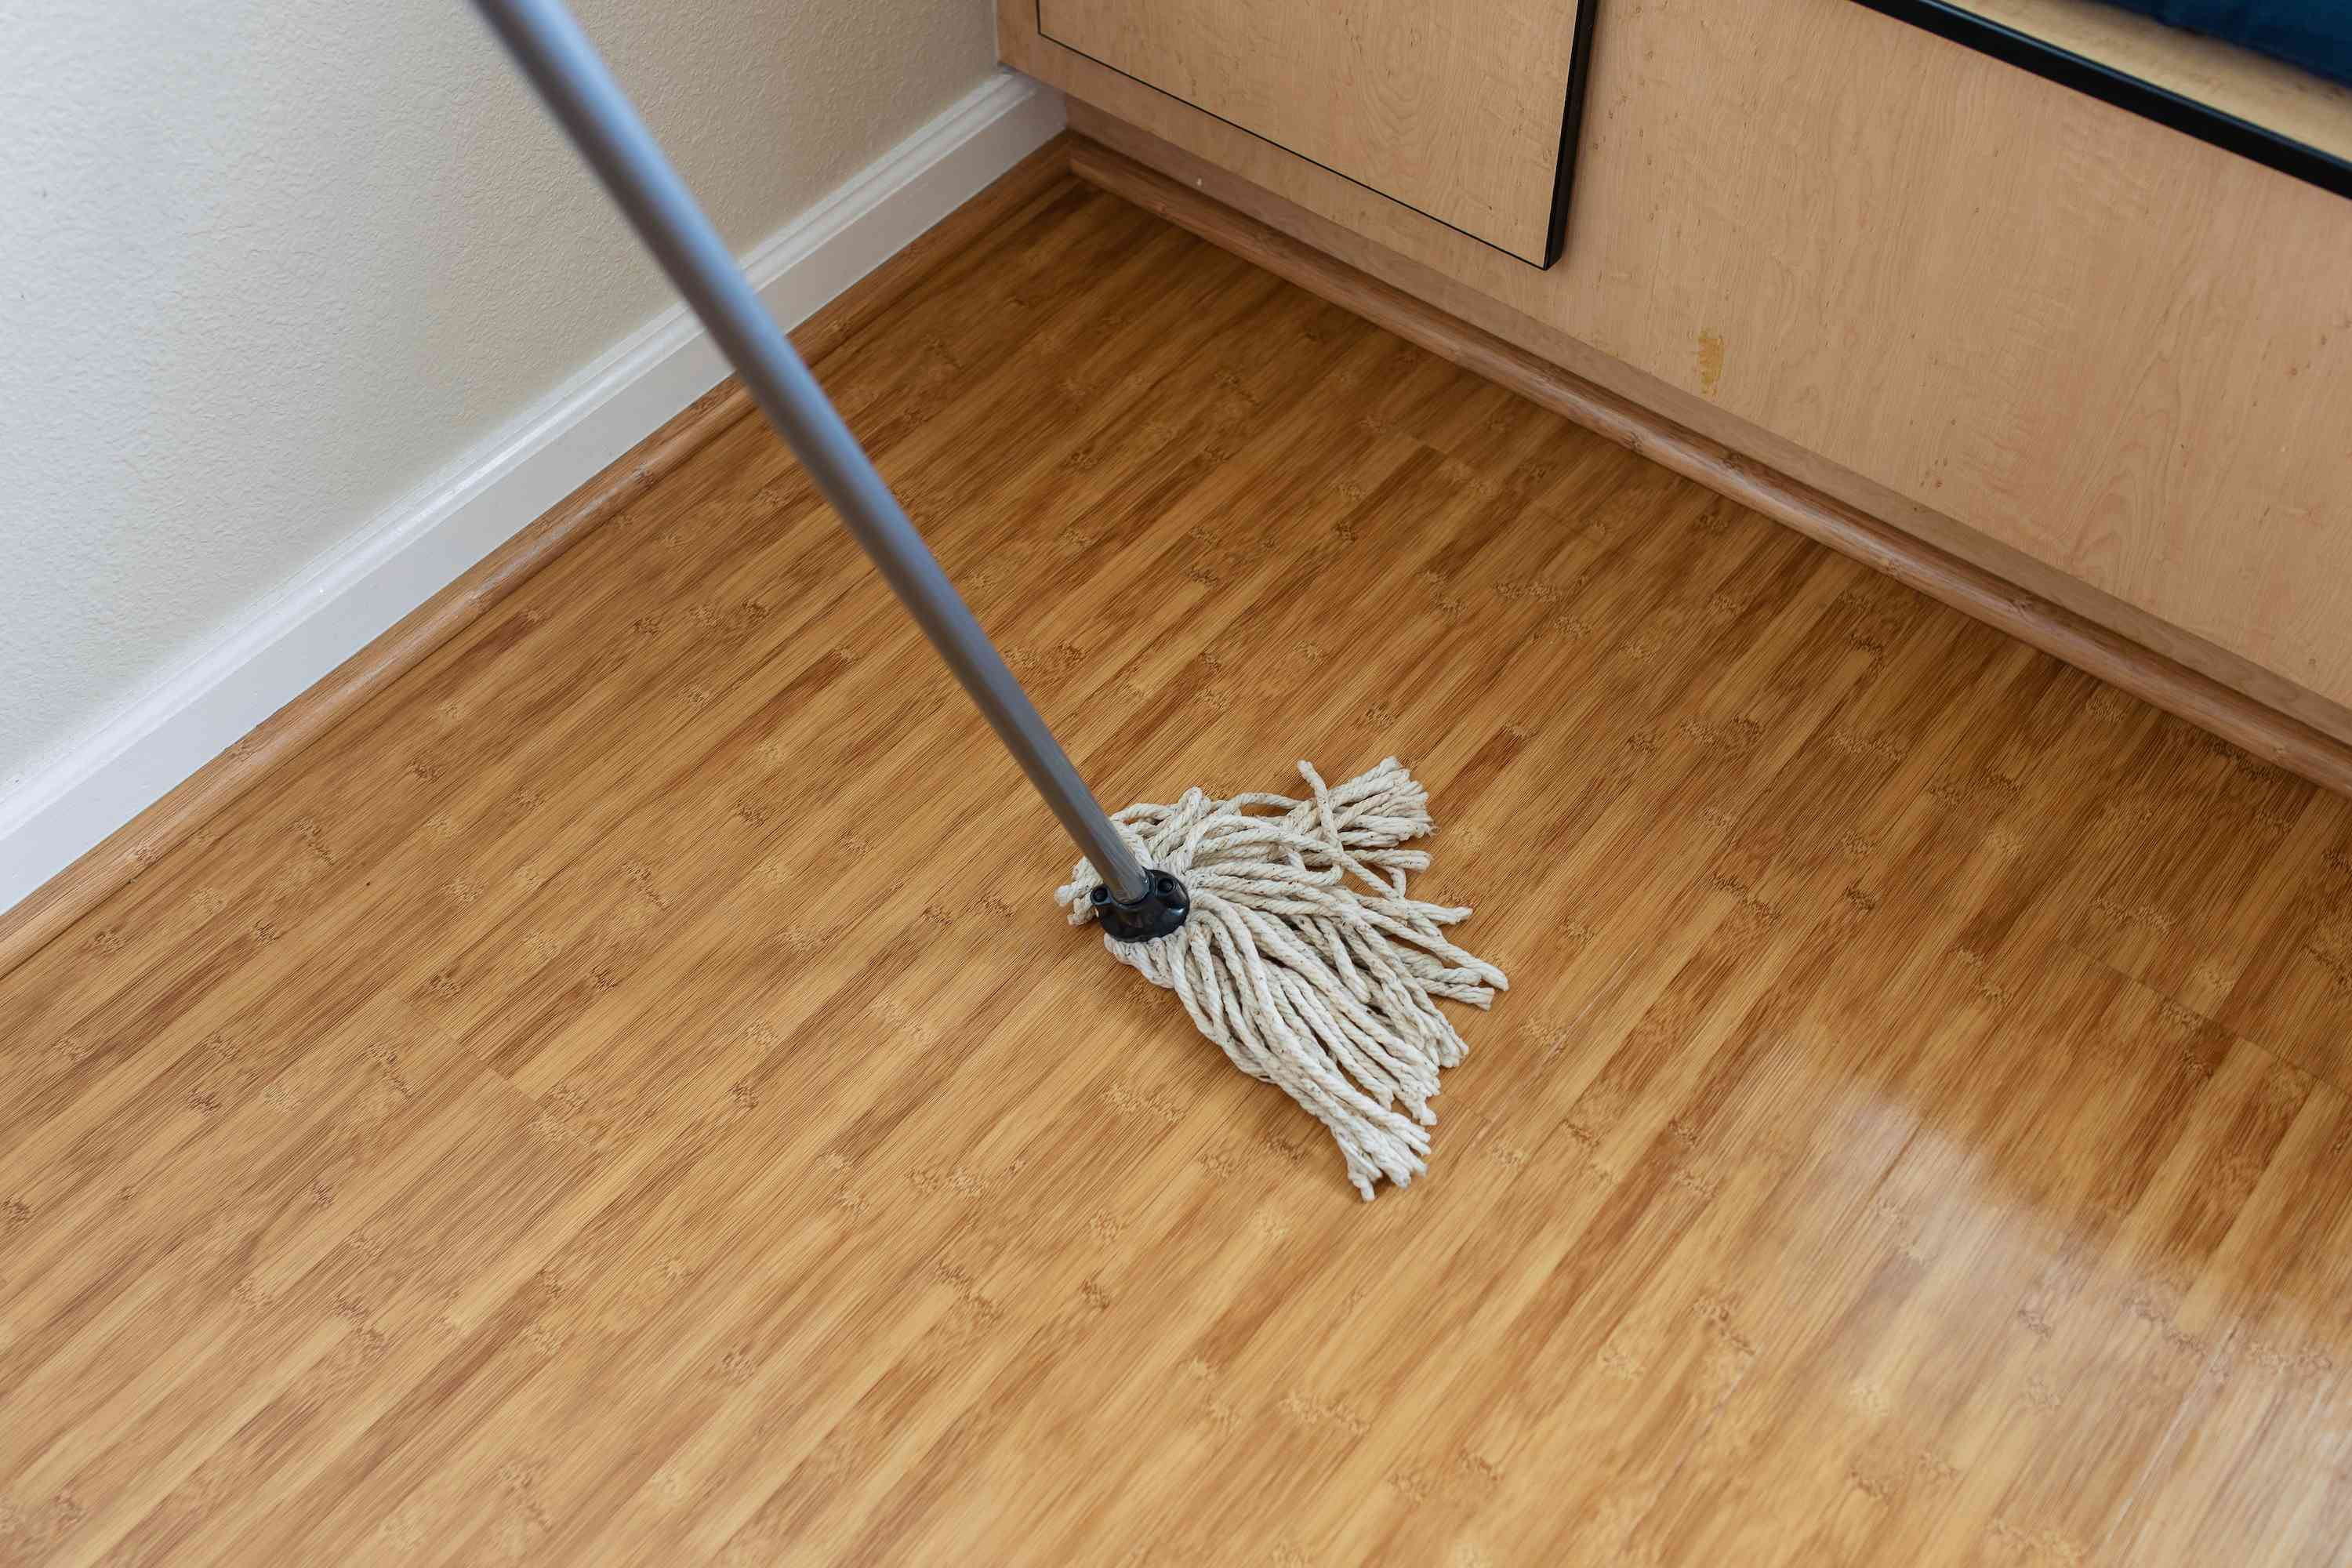 Continuing to mop the floor